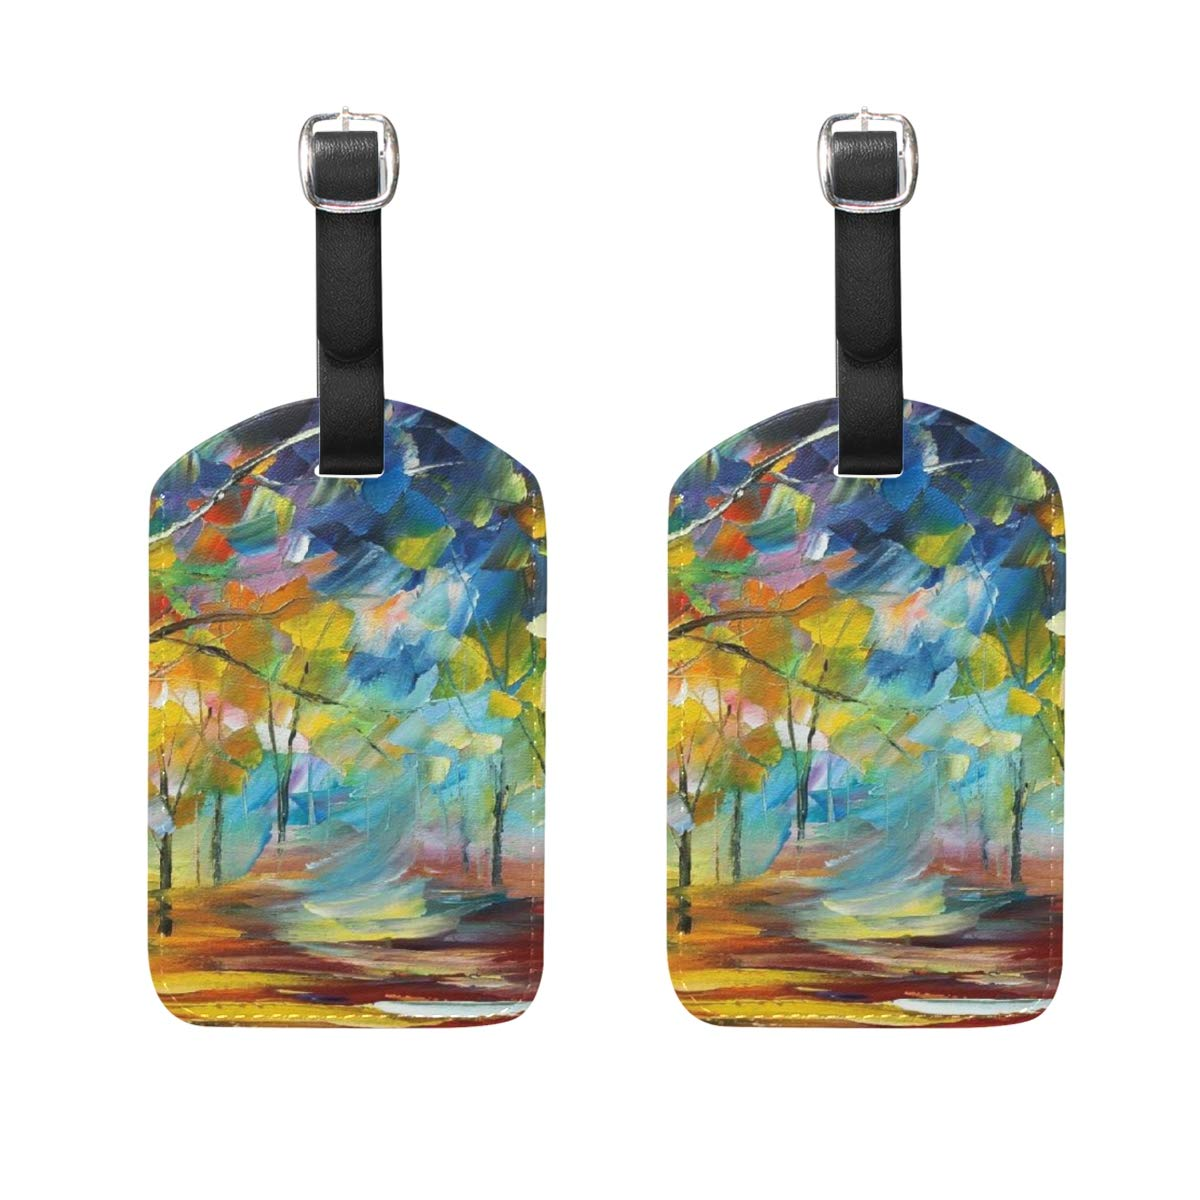 Set of 2 Luggage Tags Fine Art Suitcase Labels Travel Accessories